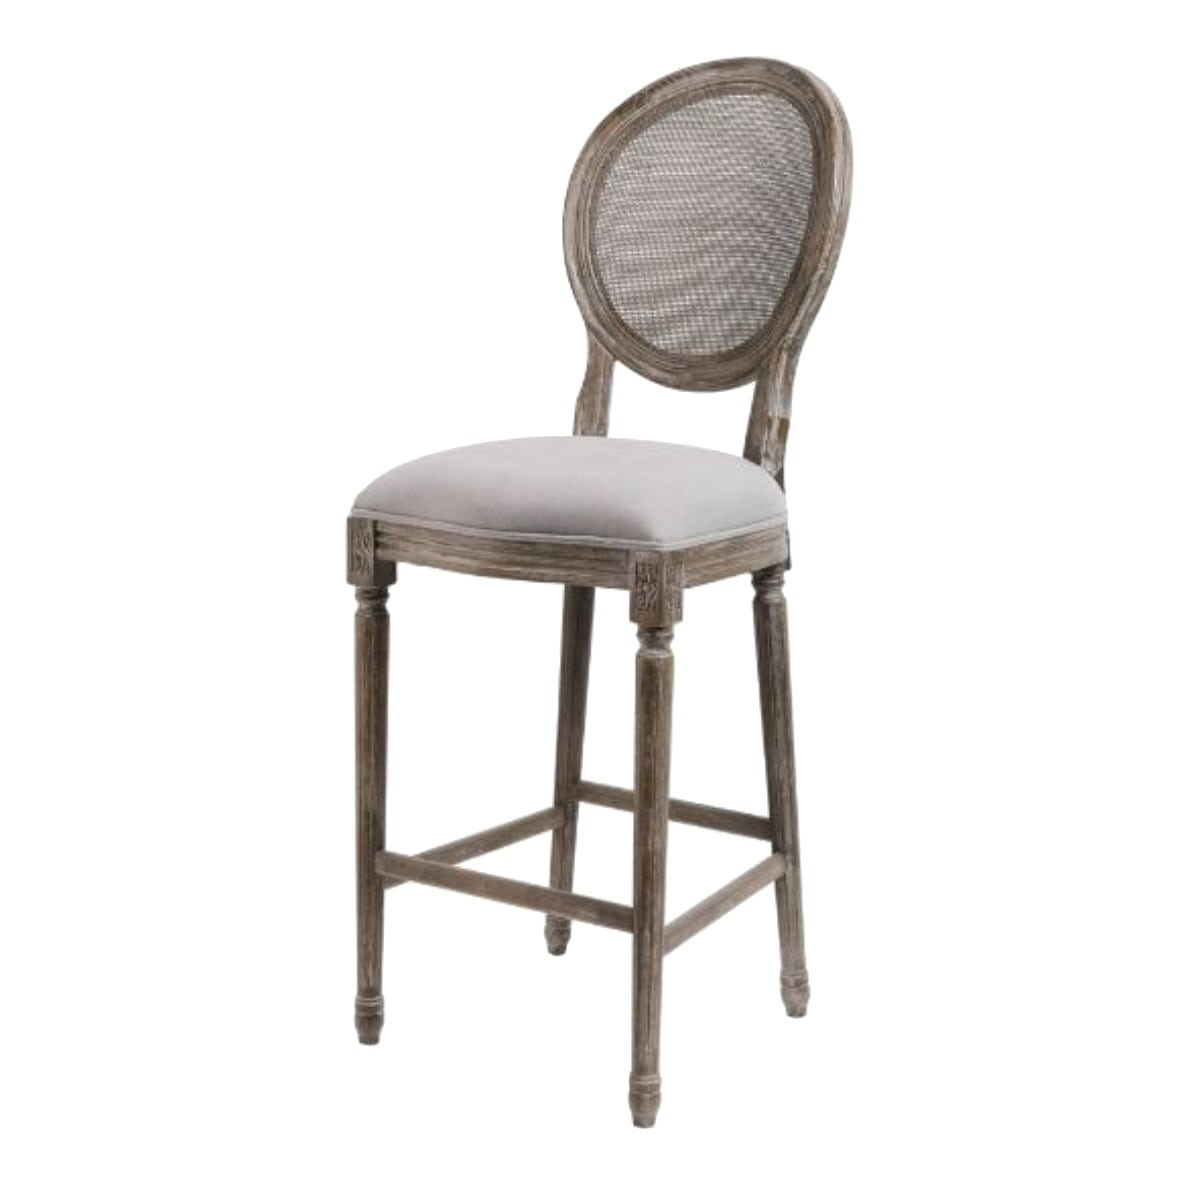 Cane Back Bar Stools Pr Gray Oatmeal Linen Seat And Aged Wood